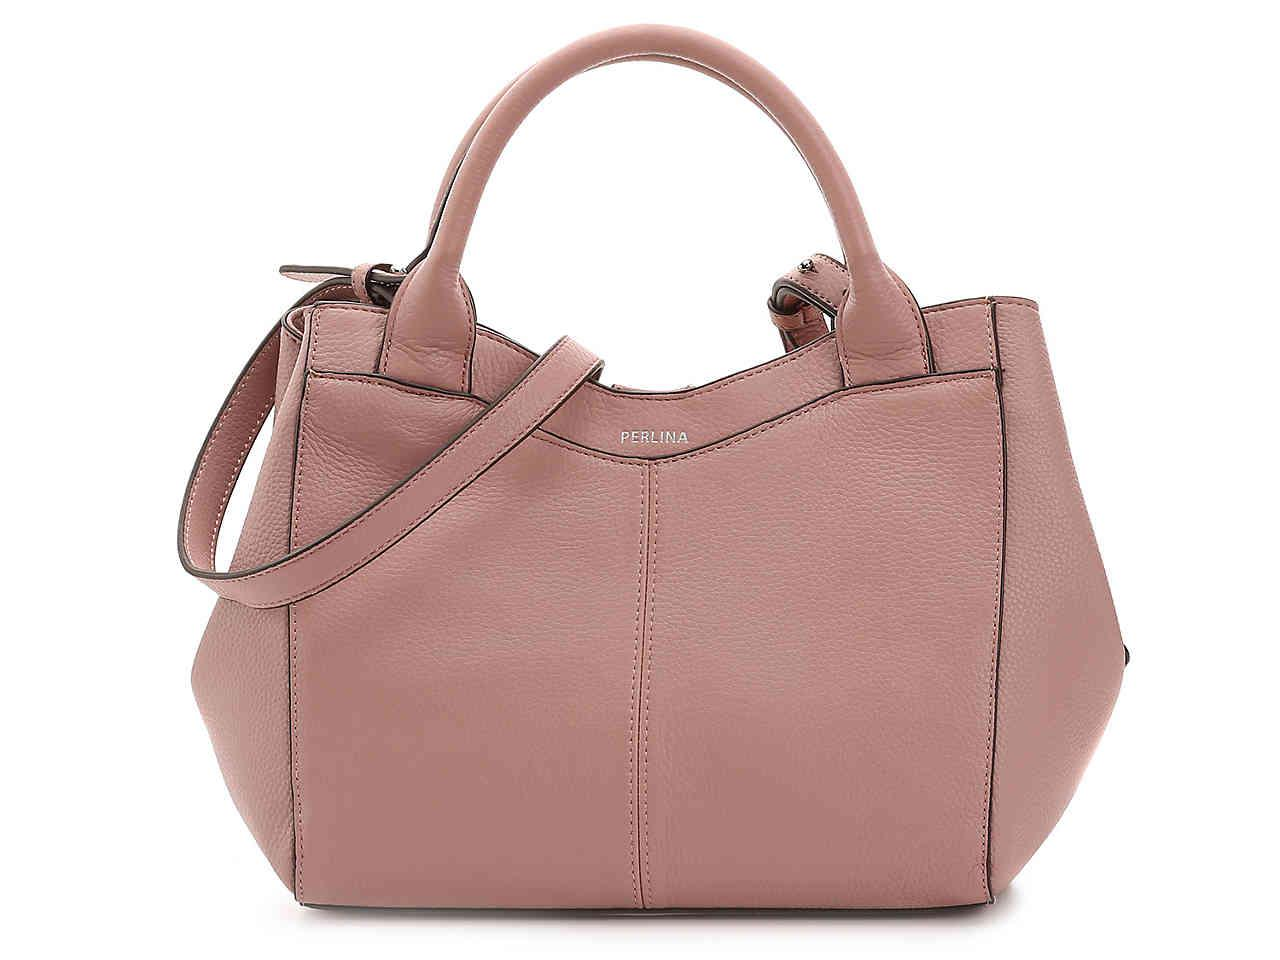 496ea184079f lyst perlina amelia leather satchel in purple Perlina Handbags New York at Perlina  Purses Handbags